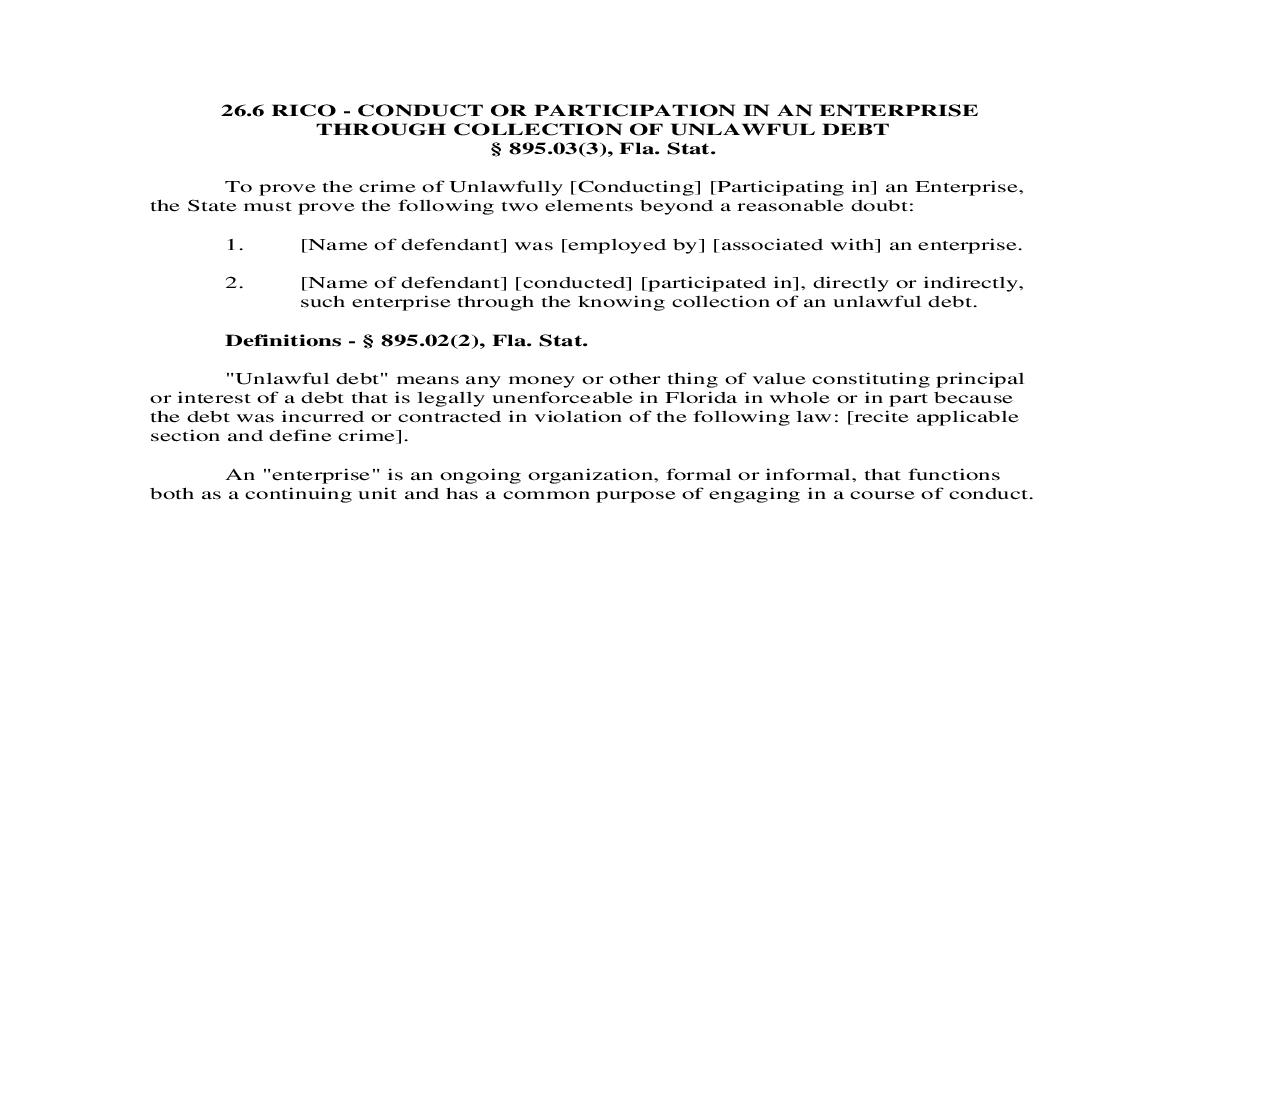 26.6. RICO - Conduct Or Participation In An Enterprise Through Collection Of Unlawful Debt | Pdf Doc Docx | Florida_JI